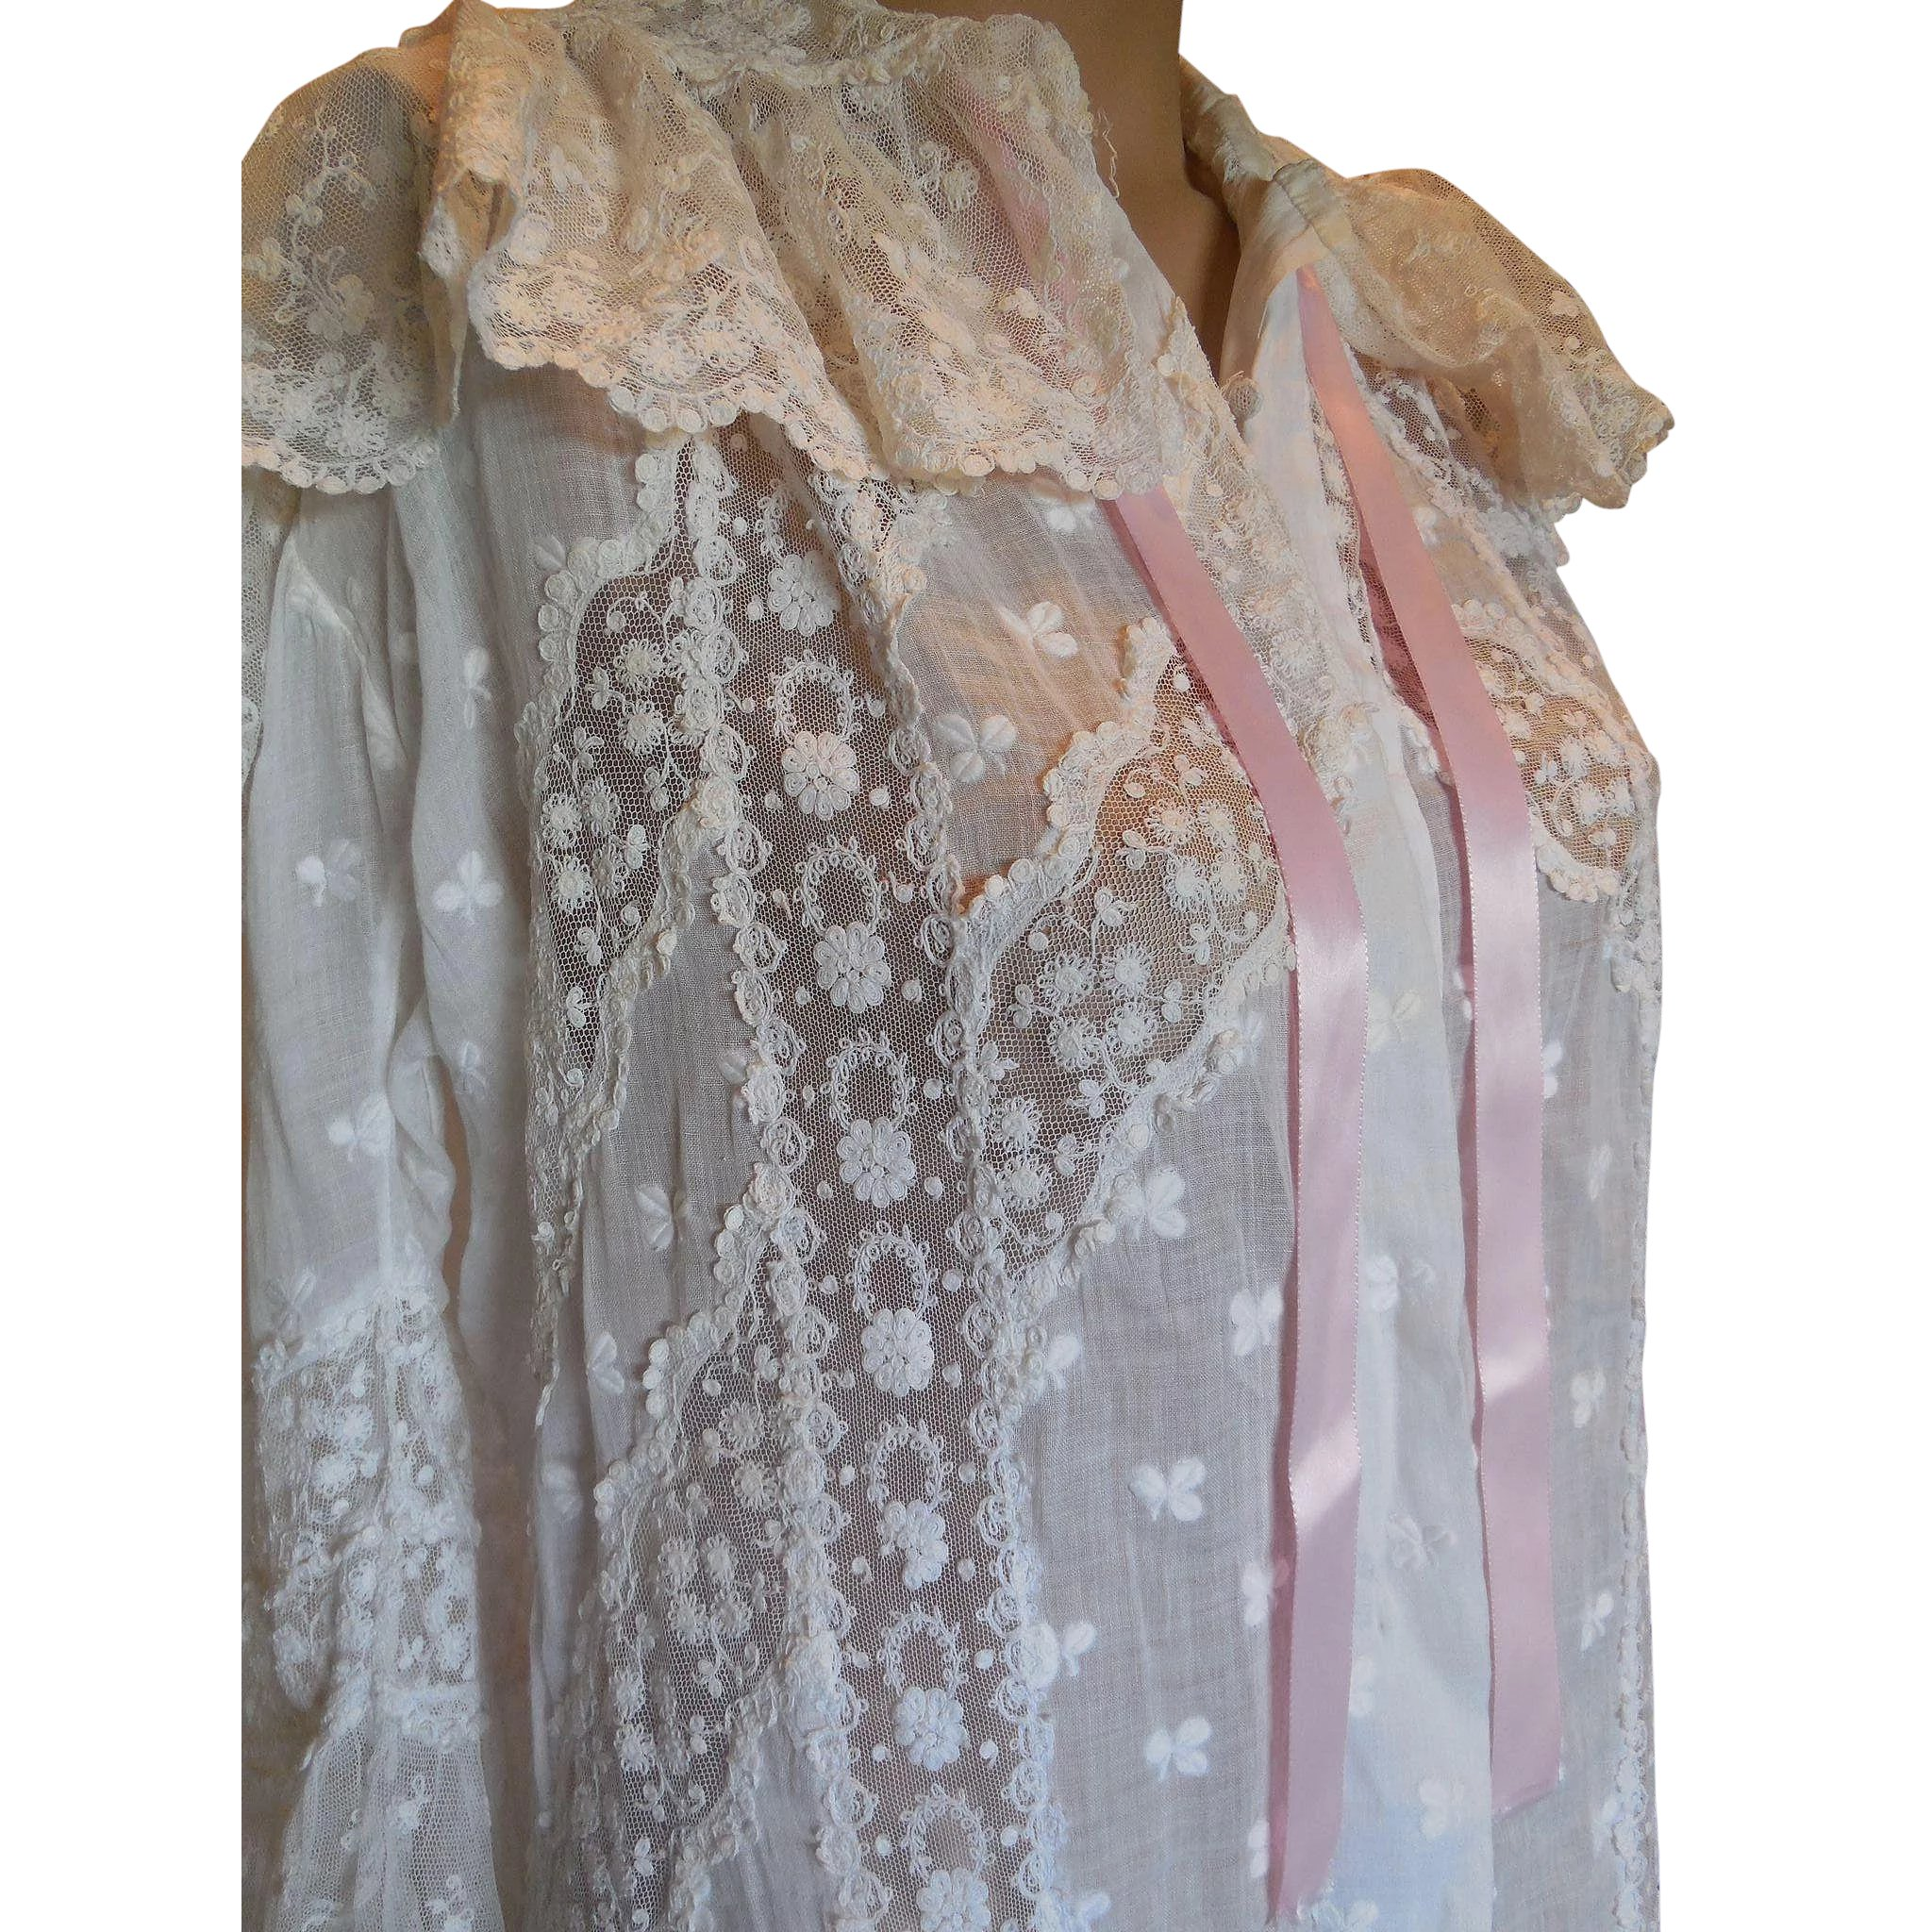 Victorian Cotton and Lace Dressing Gown : Iron Gate ...